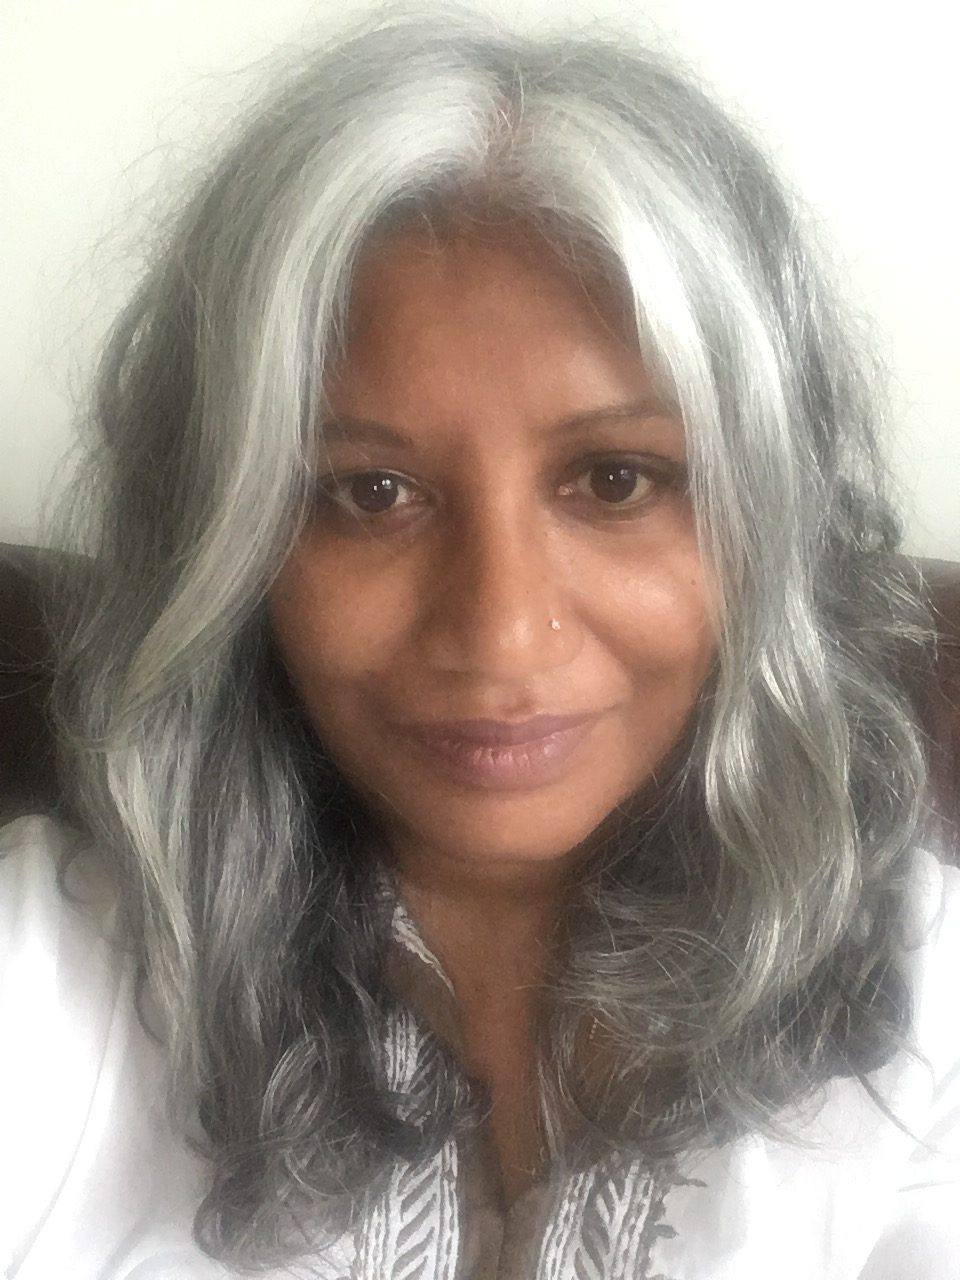 Image of a smiling woman with long silver wavy hair.